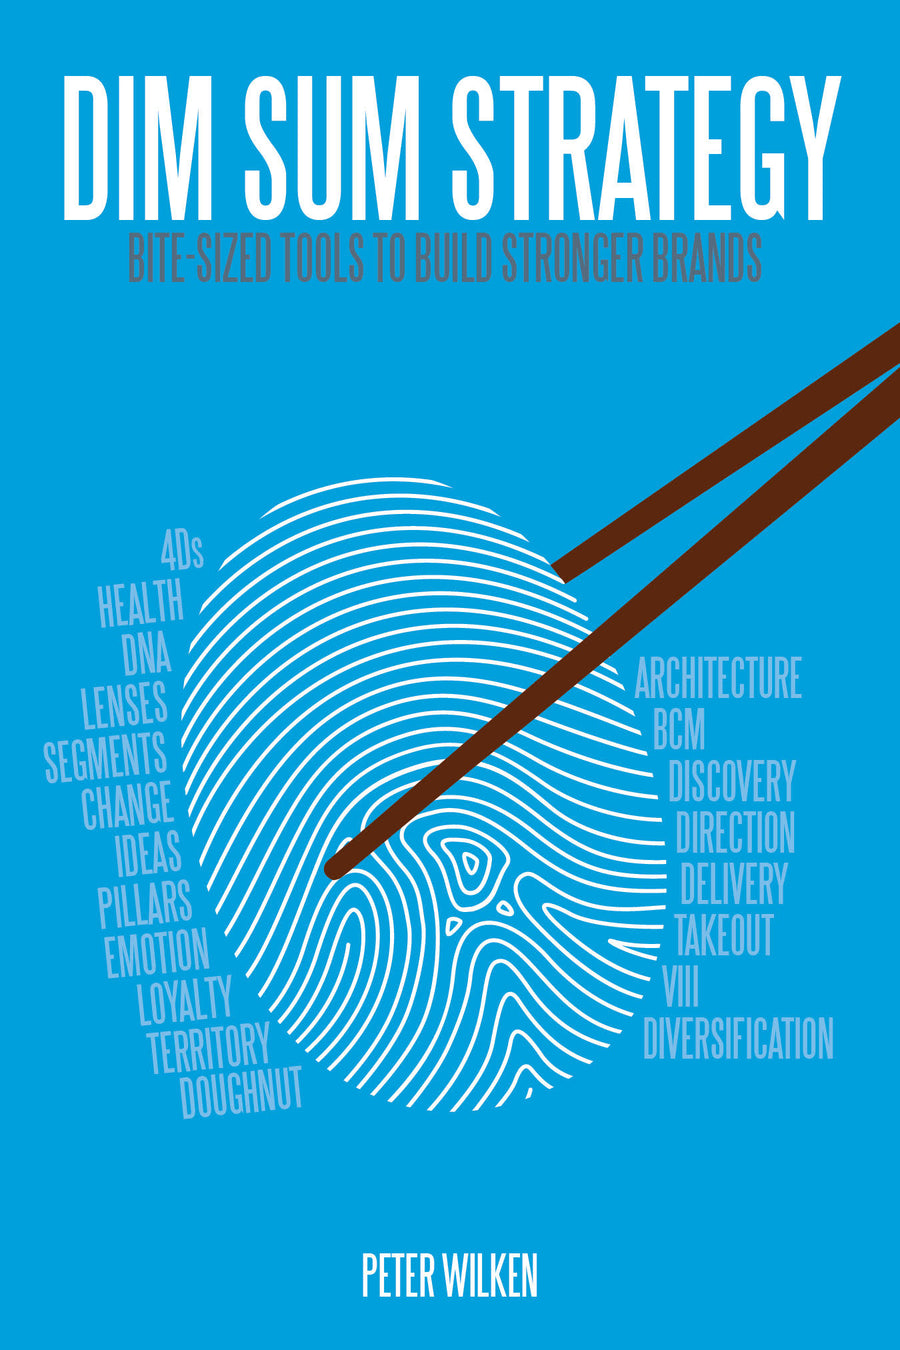 Dim Sum Strategy: Bite-Sized Tools to Build Stronger Brands (hardcover) - Belt Publishing